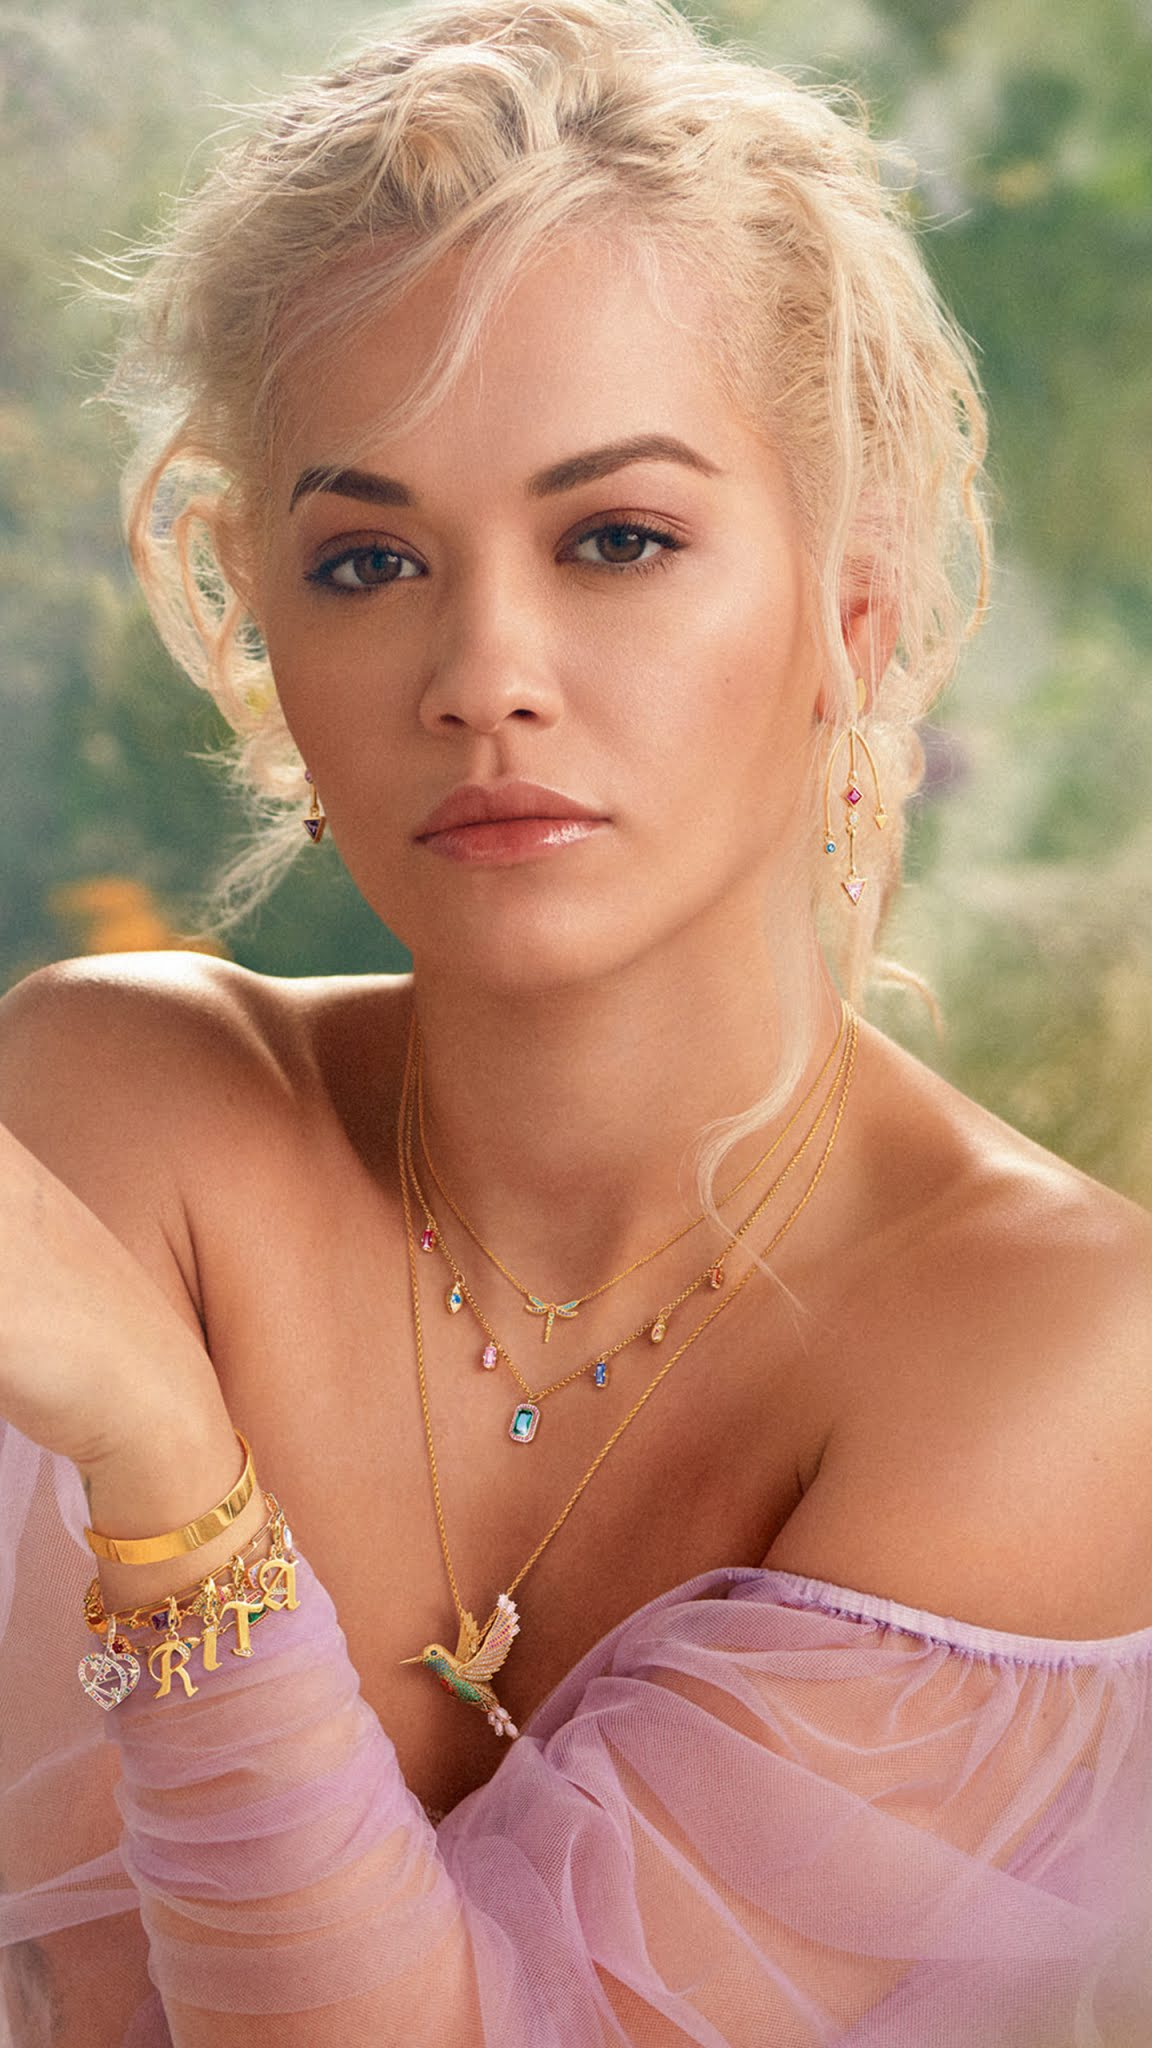 Rita ora mobile wallpaper